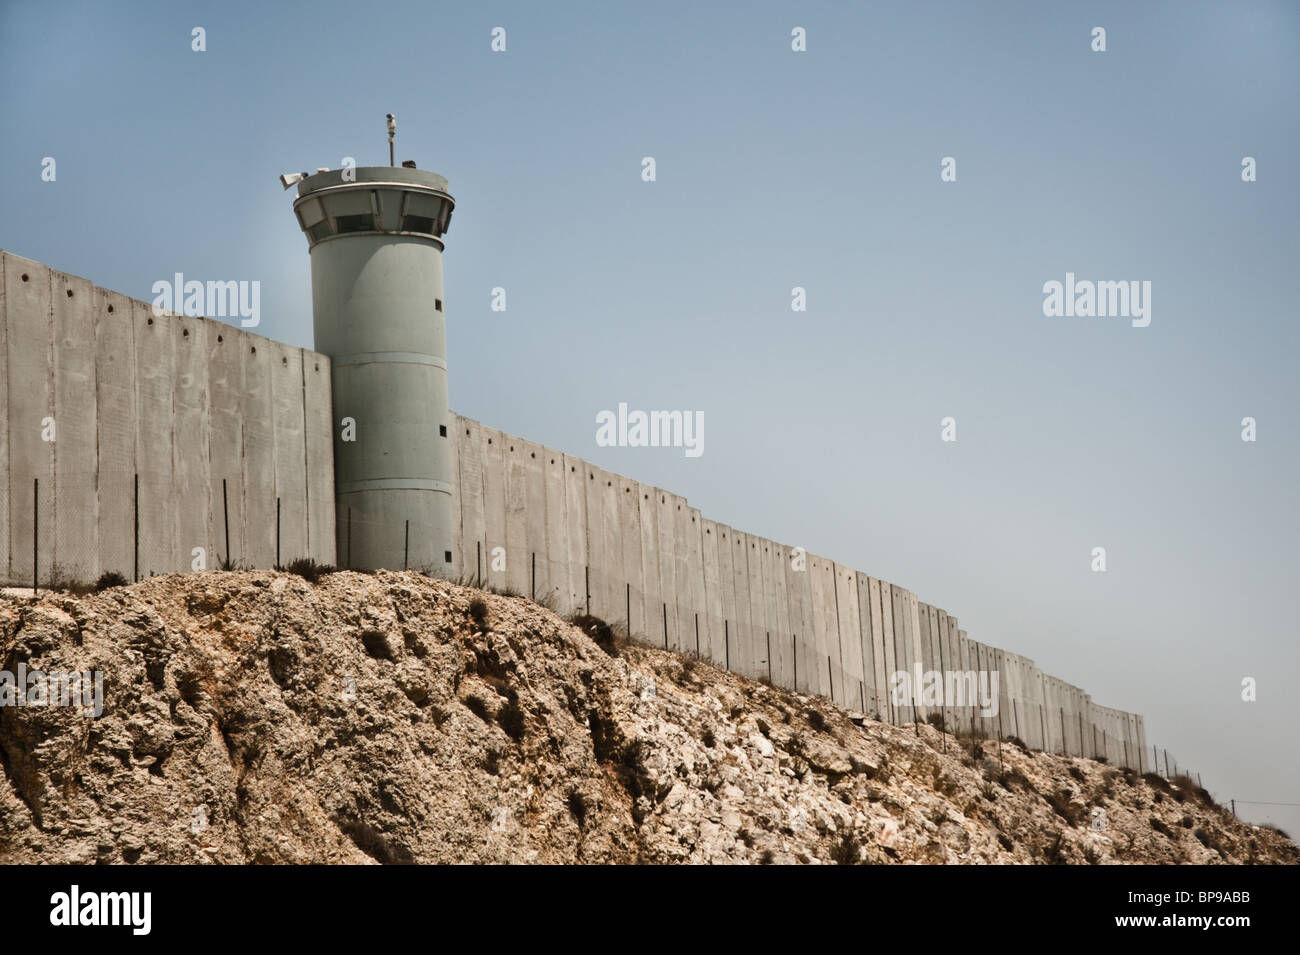 The Israeli separation wall cuts through Palestinian land near the West Bank town of Kalandia. - Stock Image